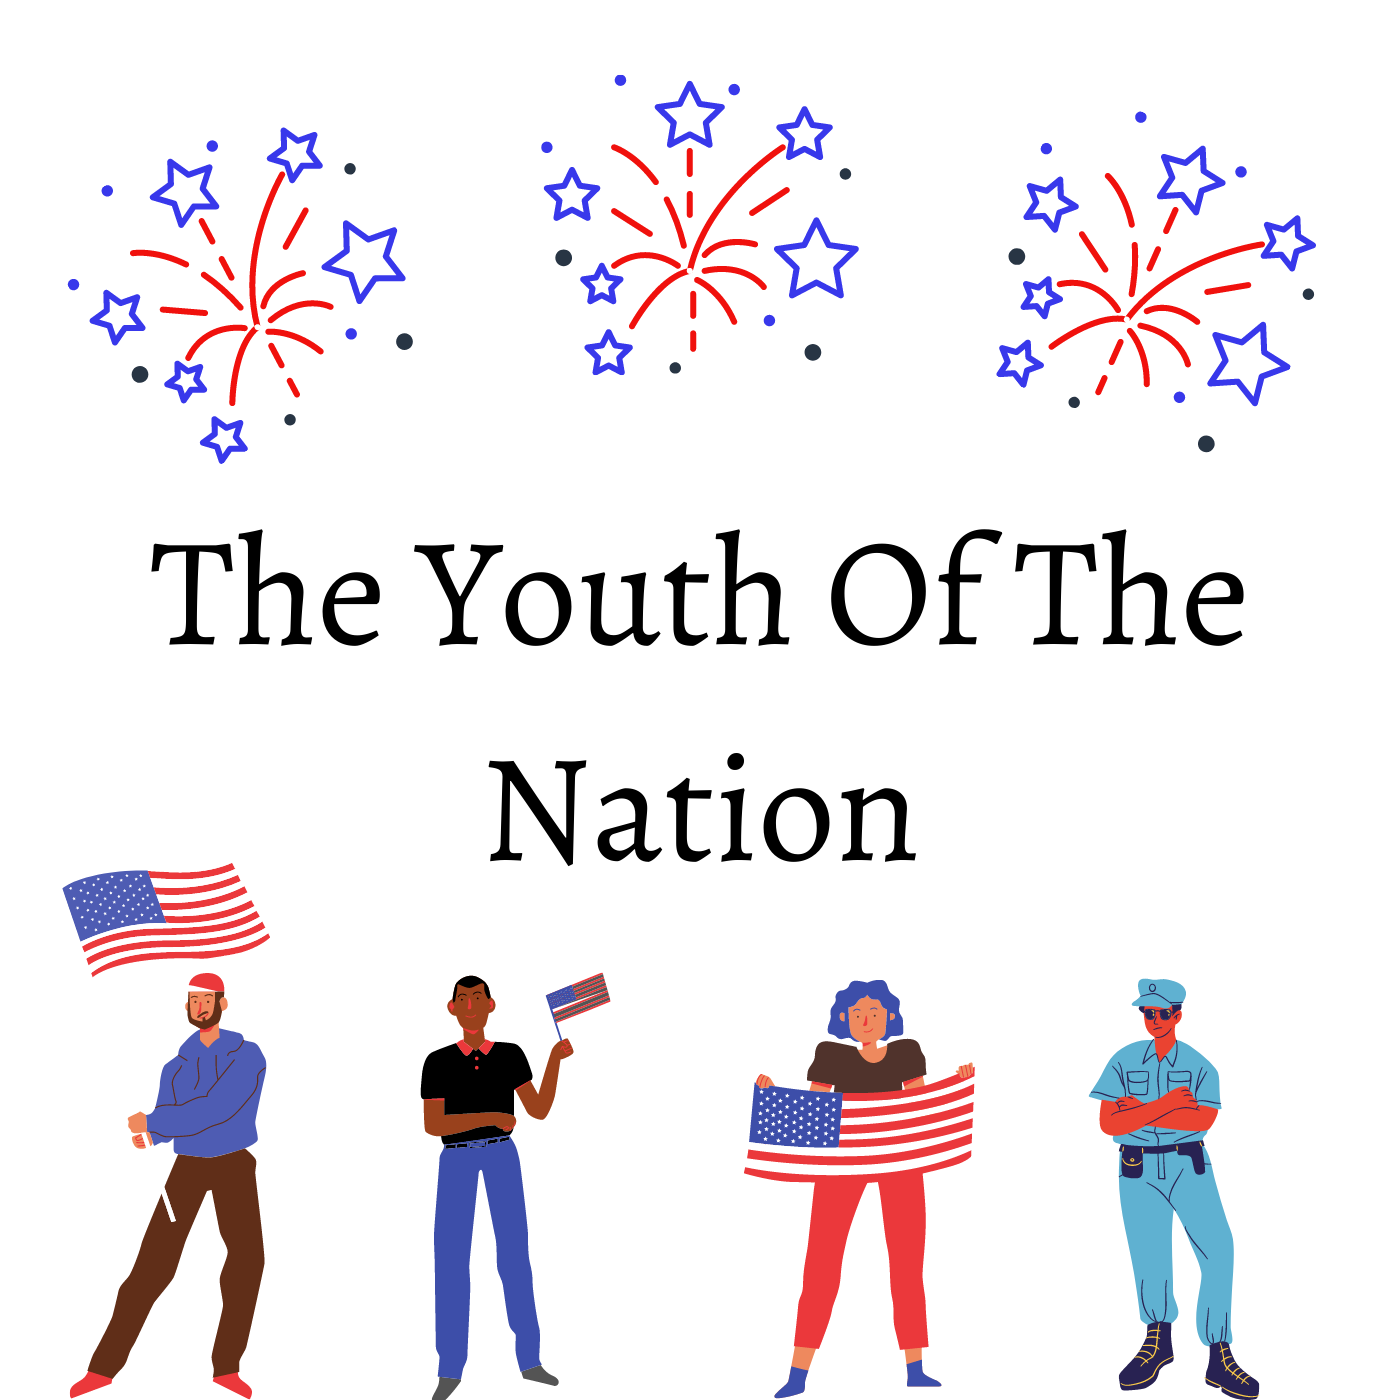 The Youth Of The Nation